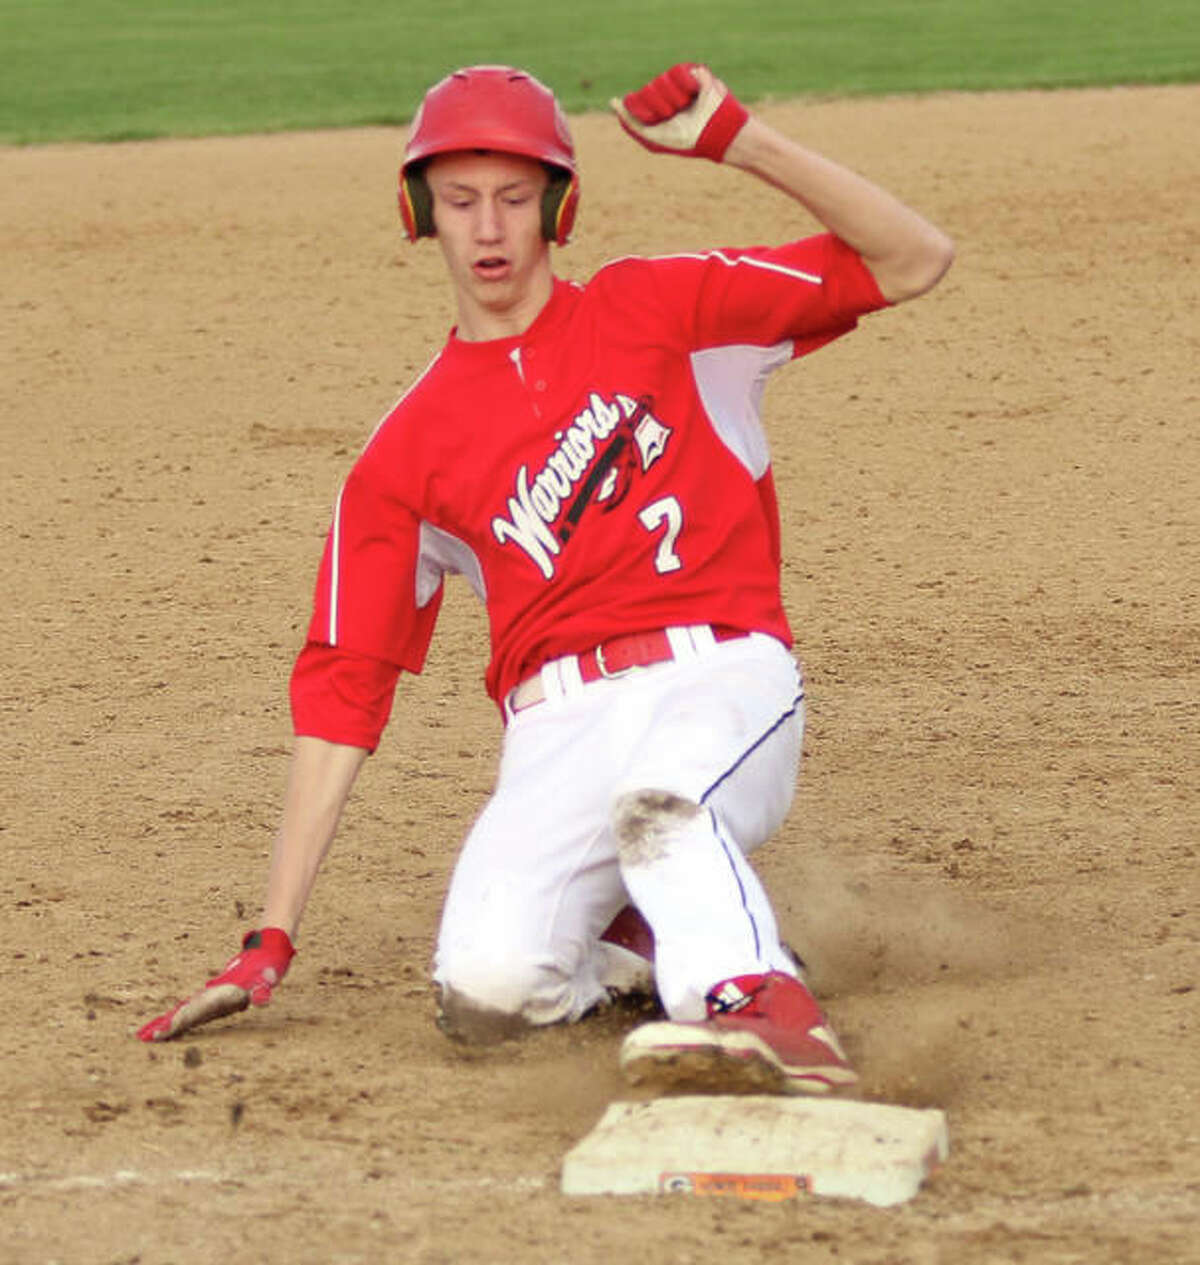 Calhoun's Corey Nelson slides safely into third base during the Warriors' six-run fifth inning Monday in Gillespie.